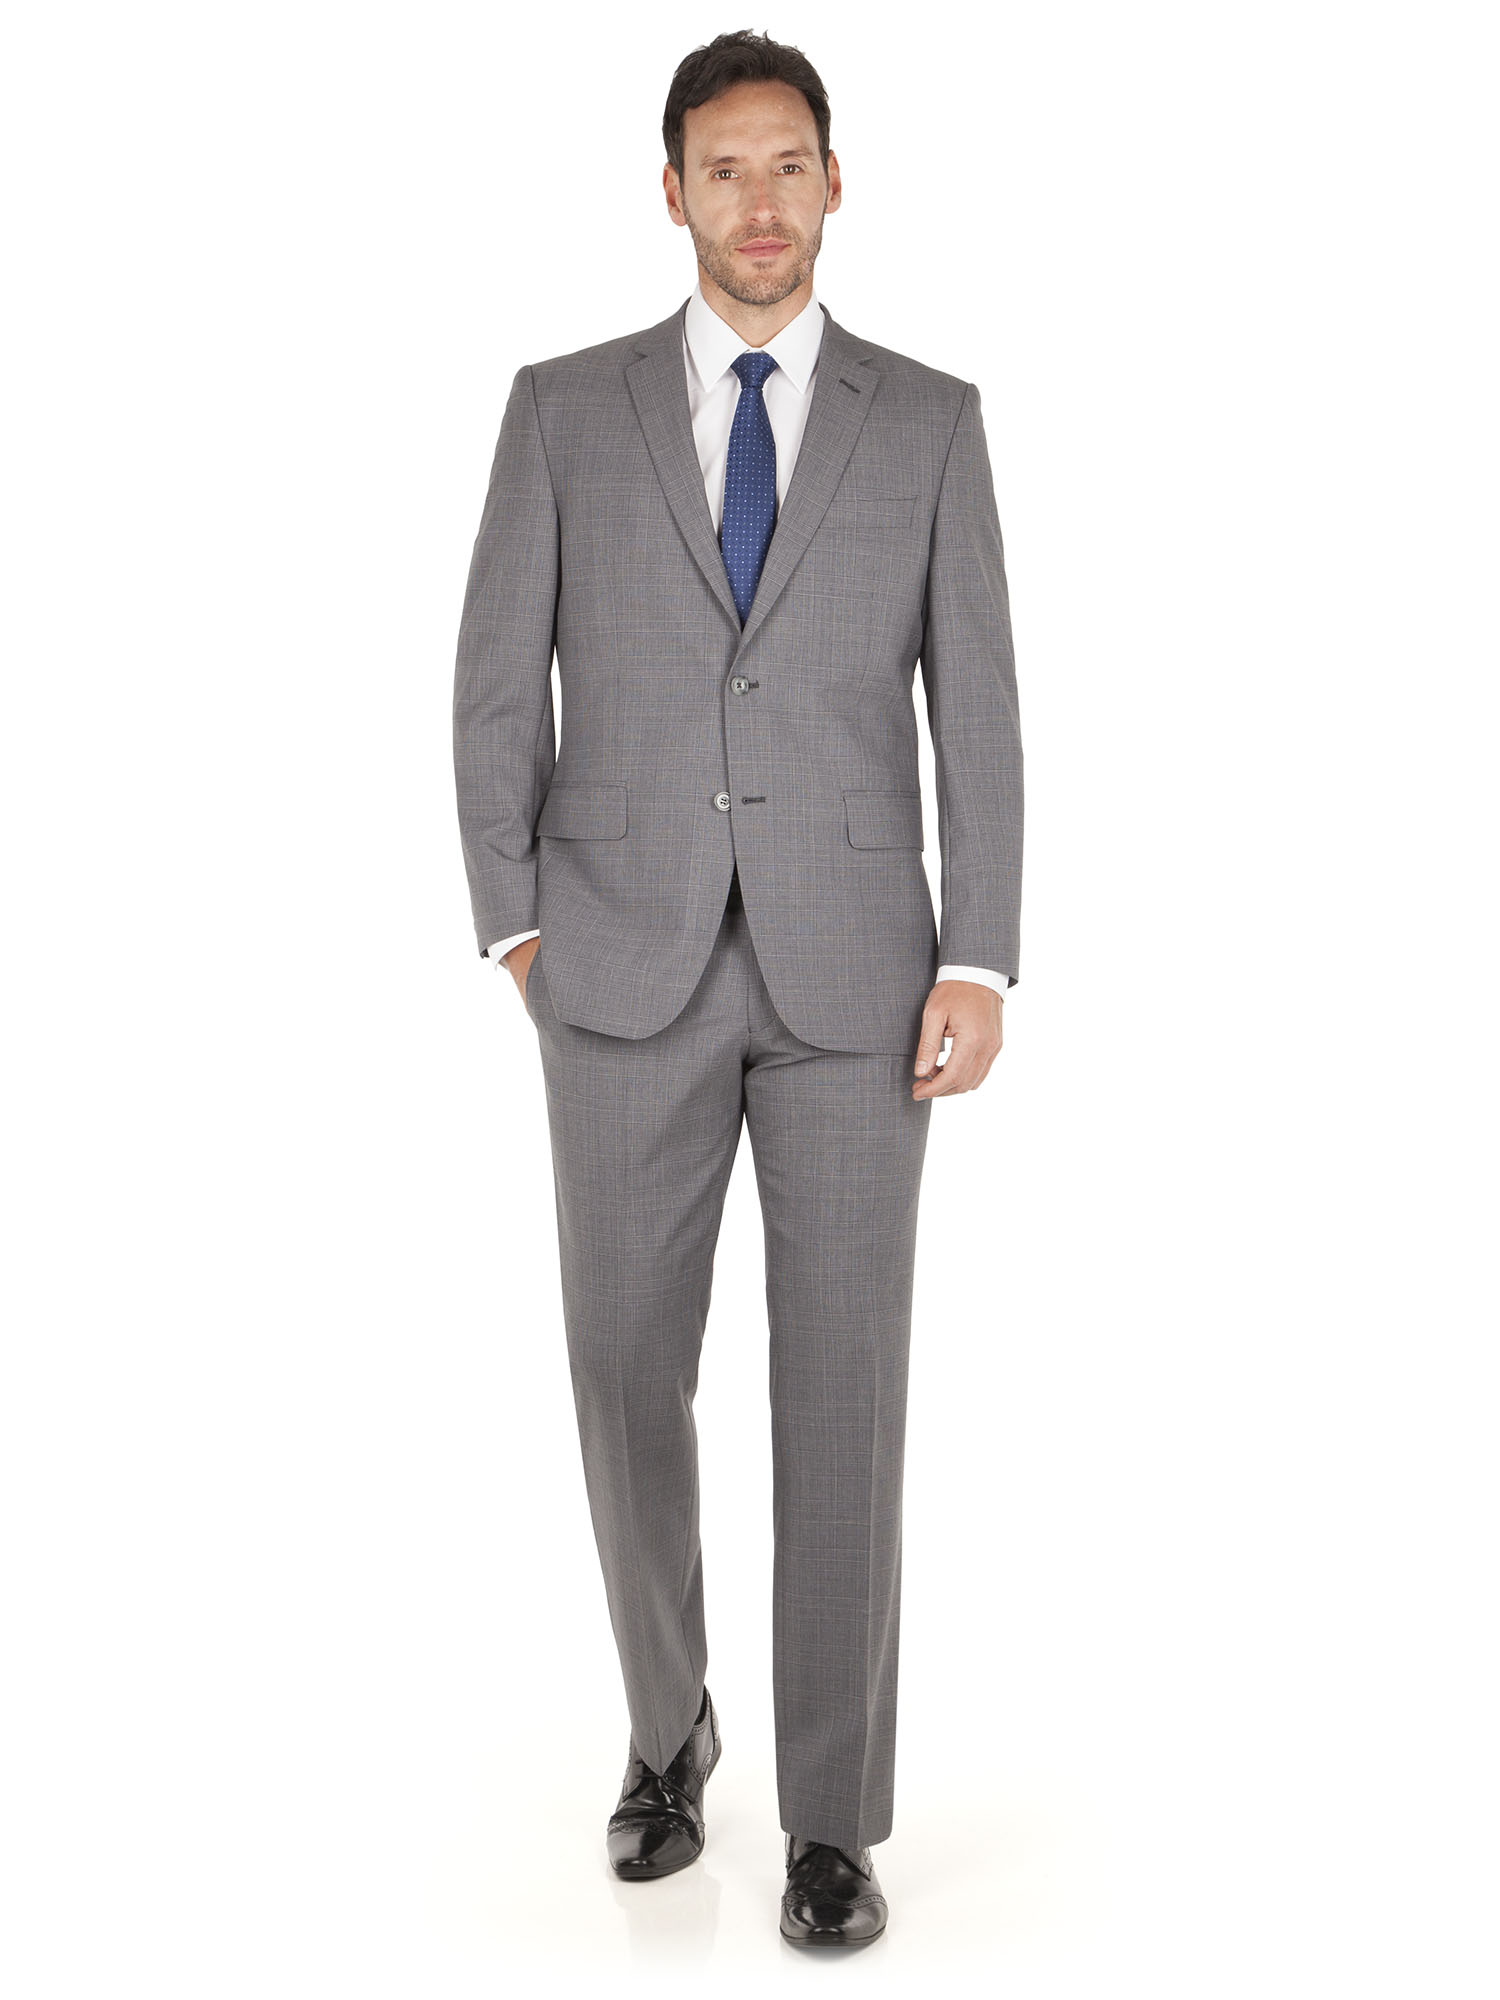 Regular Fit - Buy mens suits at M&S. Discover our wide range of fits and styles for mens suits. Buy suits online at M&S.